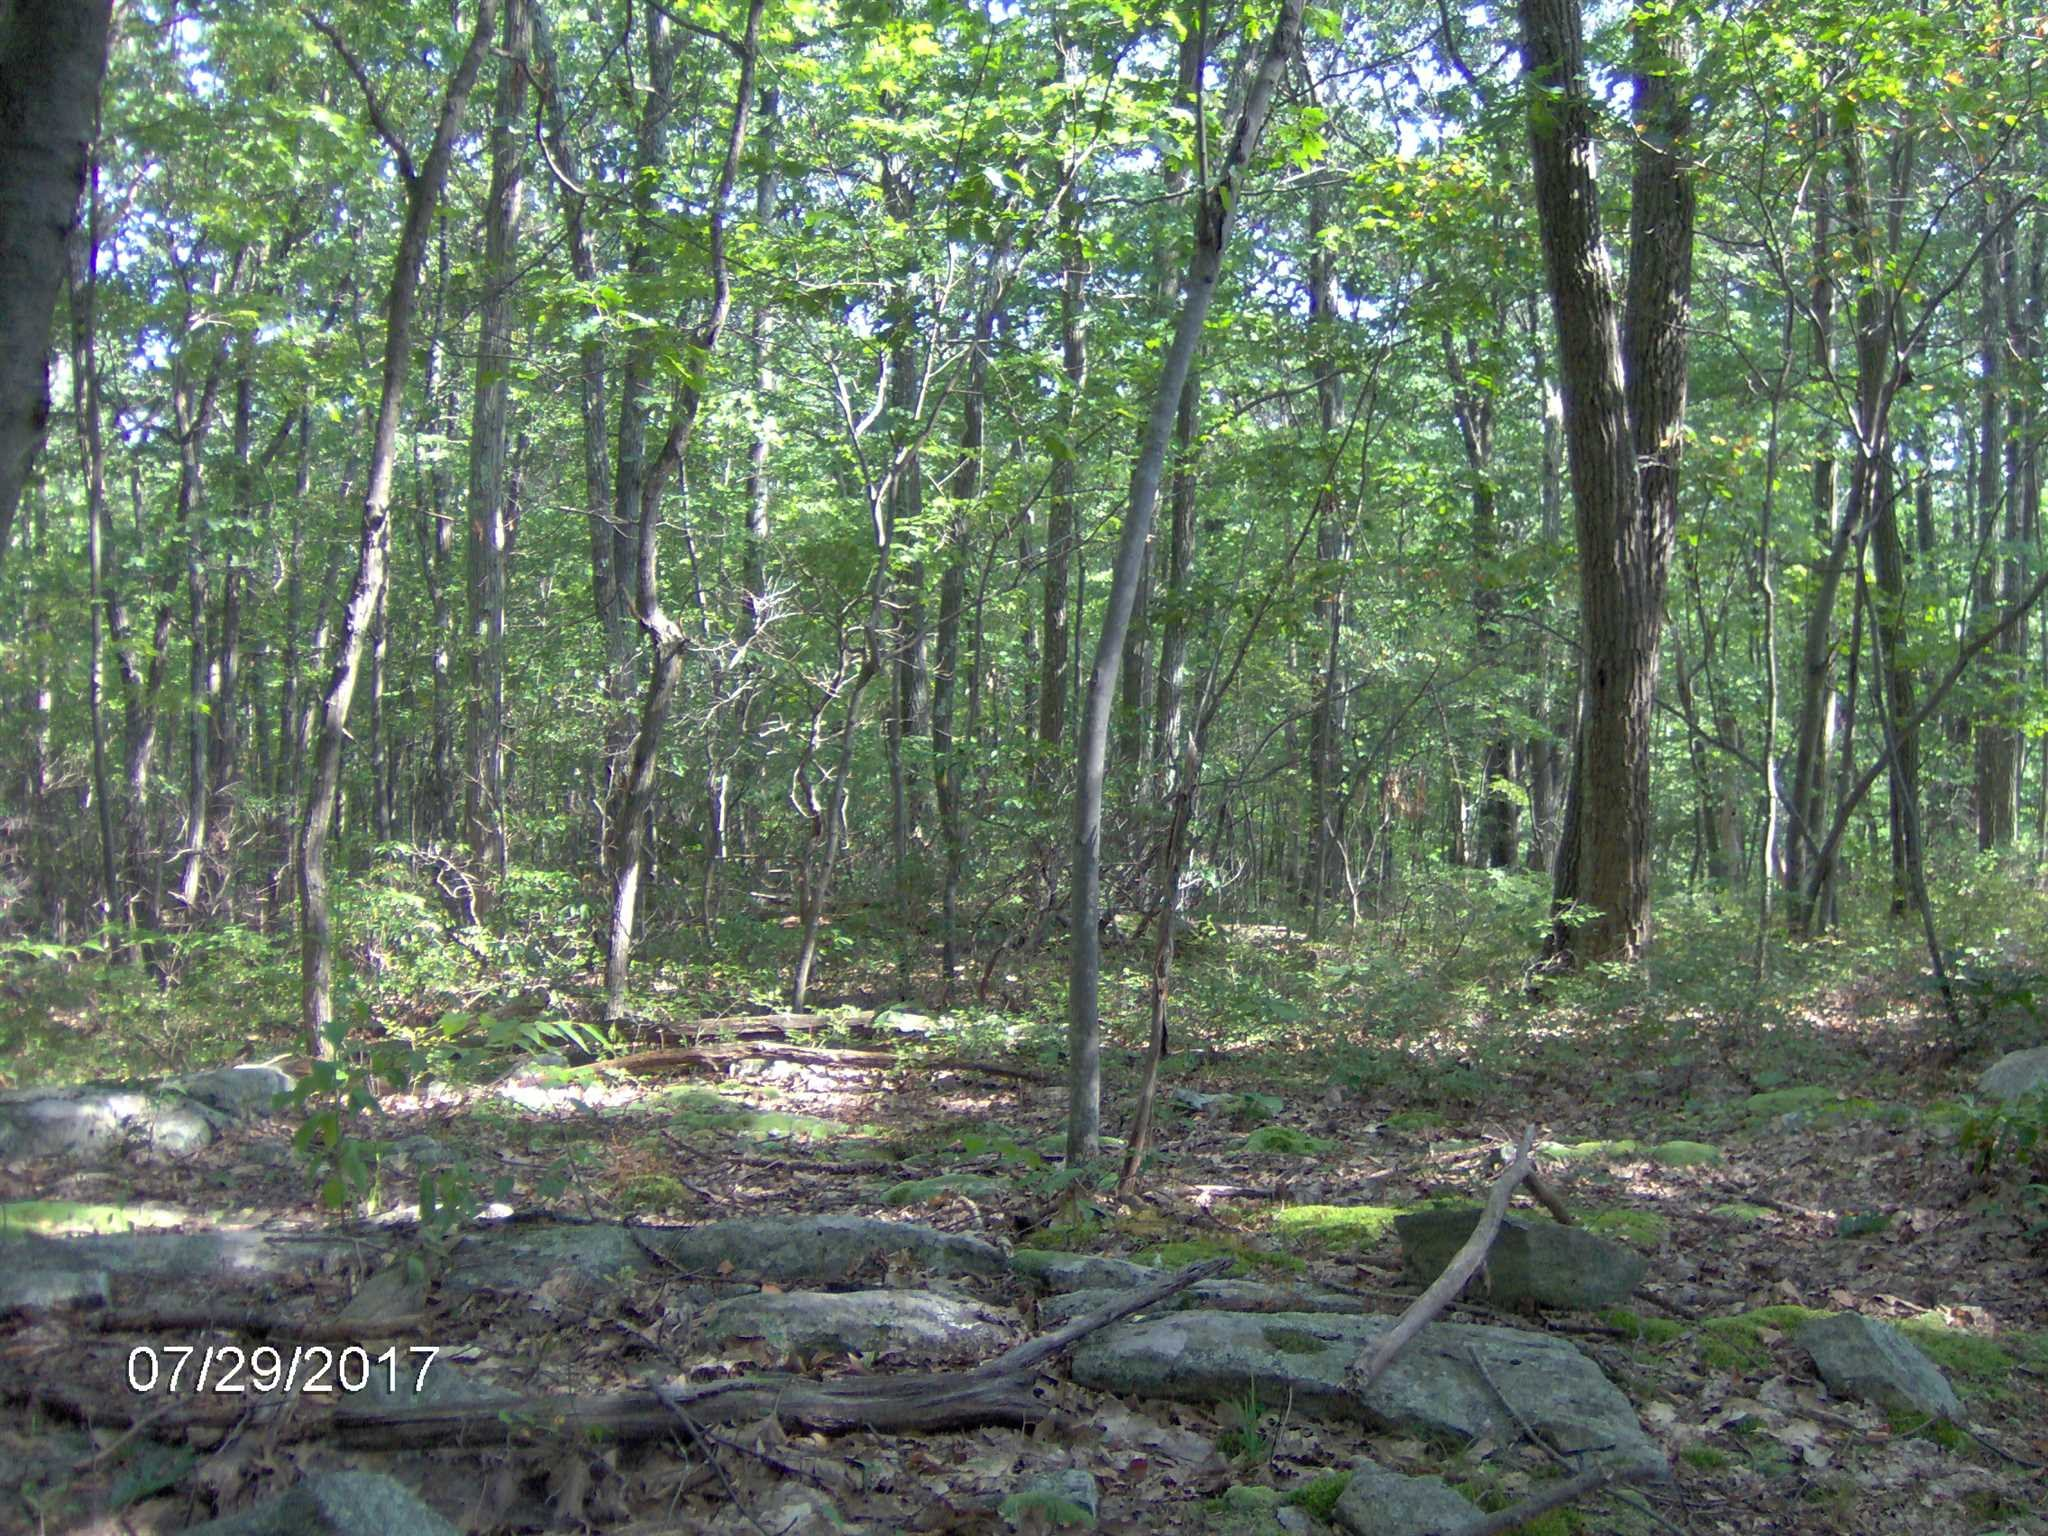 Land for Sale at 294 WOODMONT ROAD 294 WOODMONT ROAD East Fishkill, New York 12533 United States